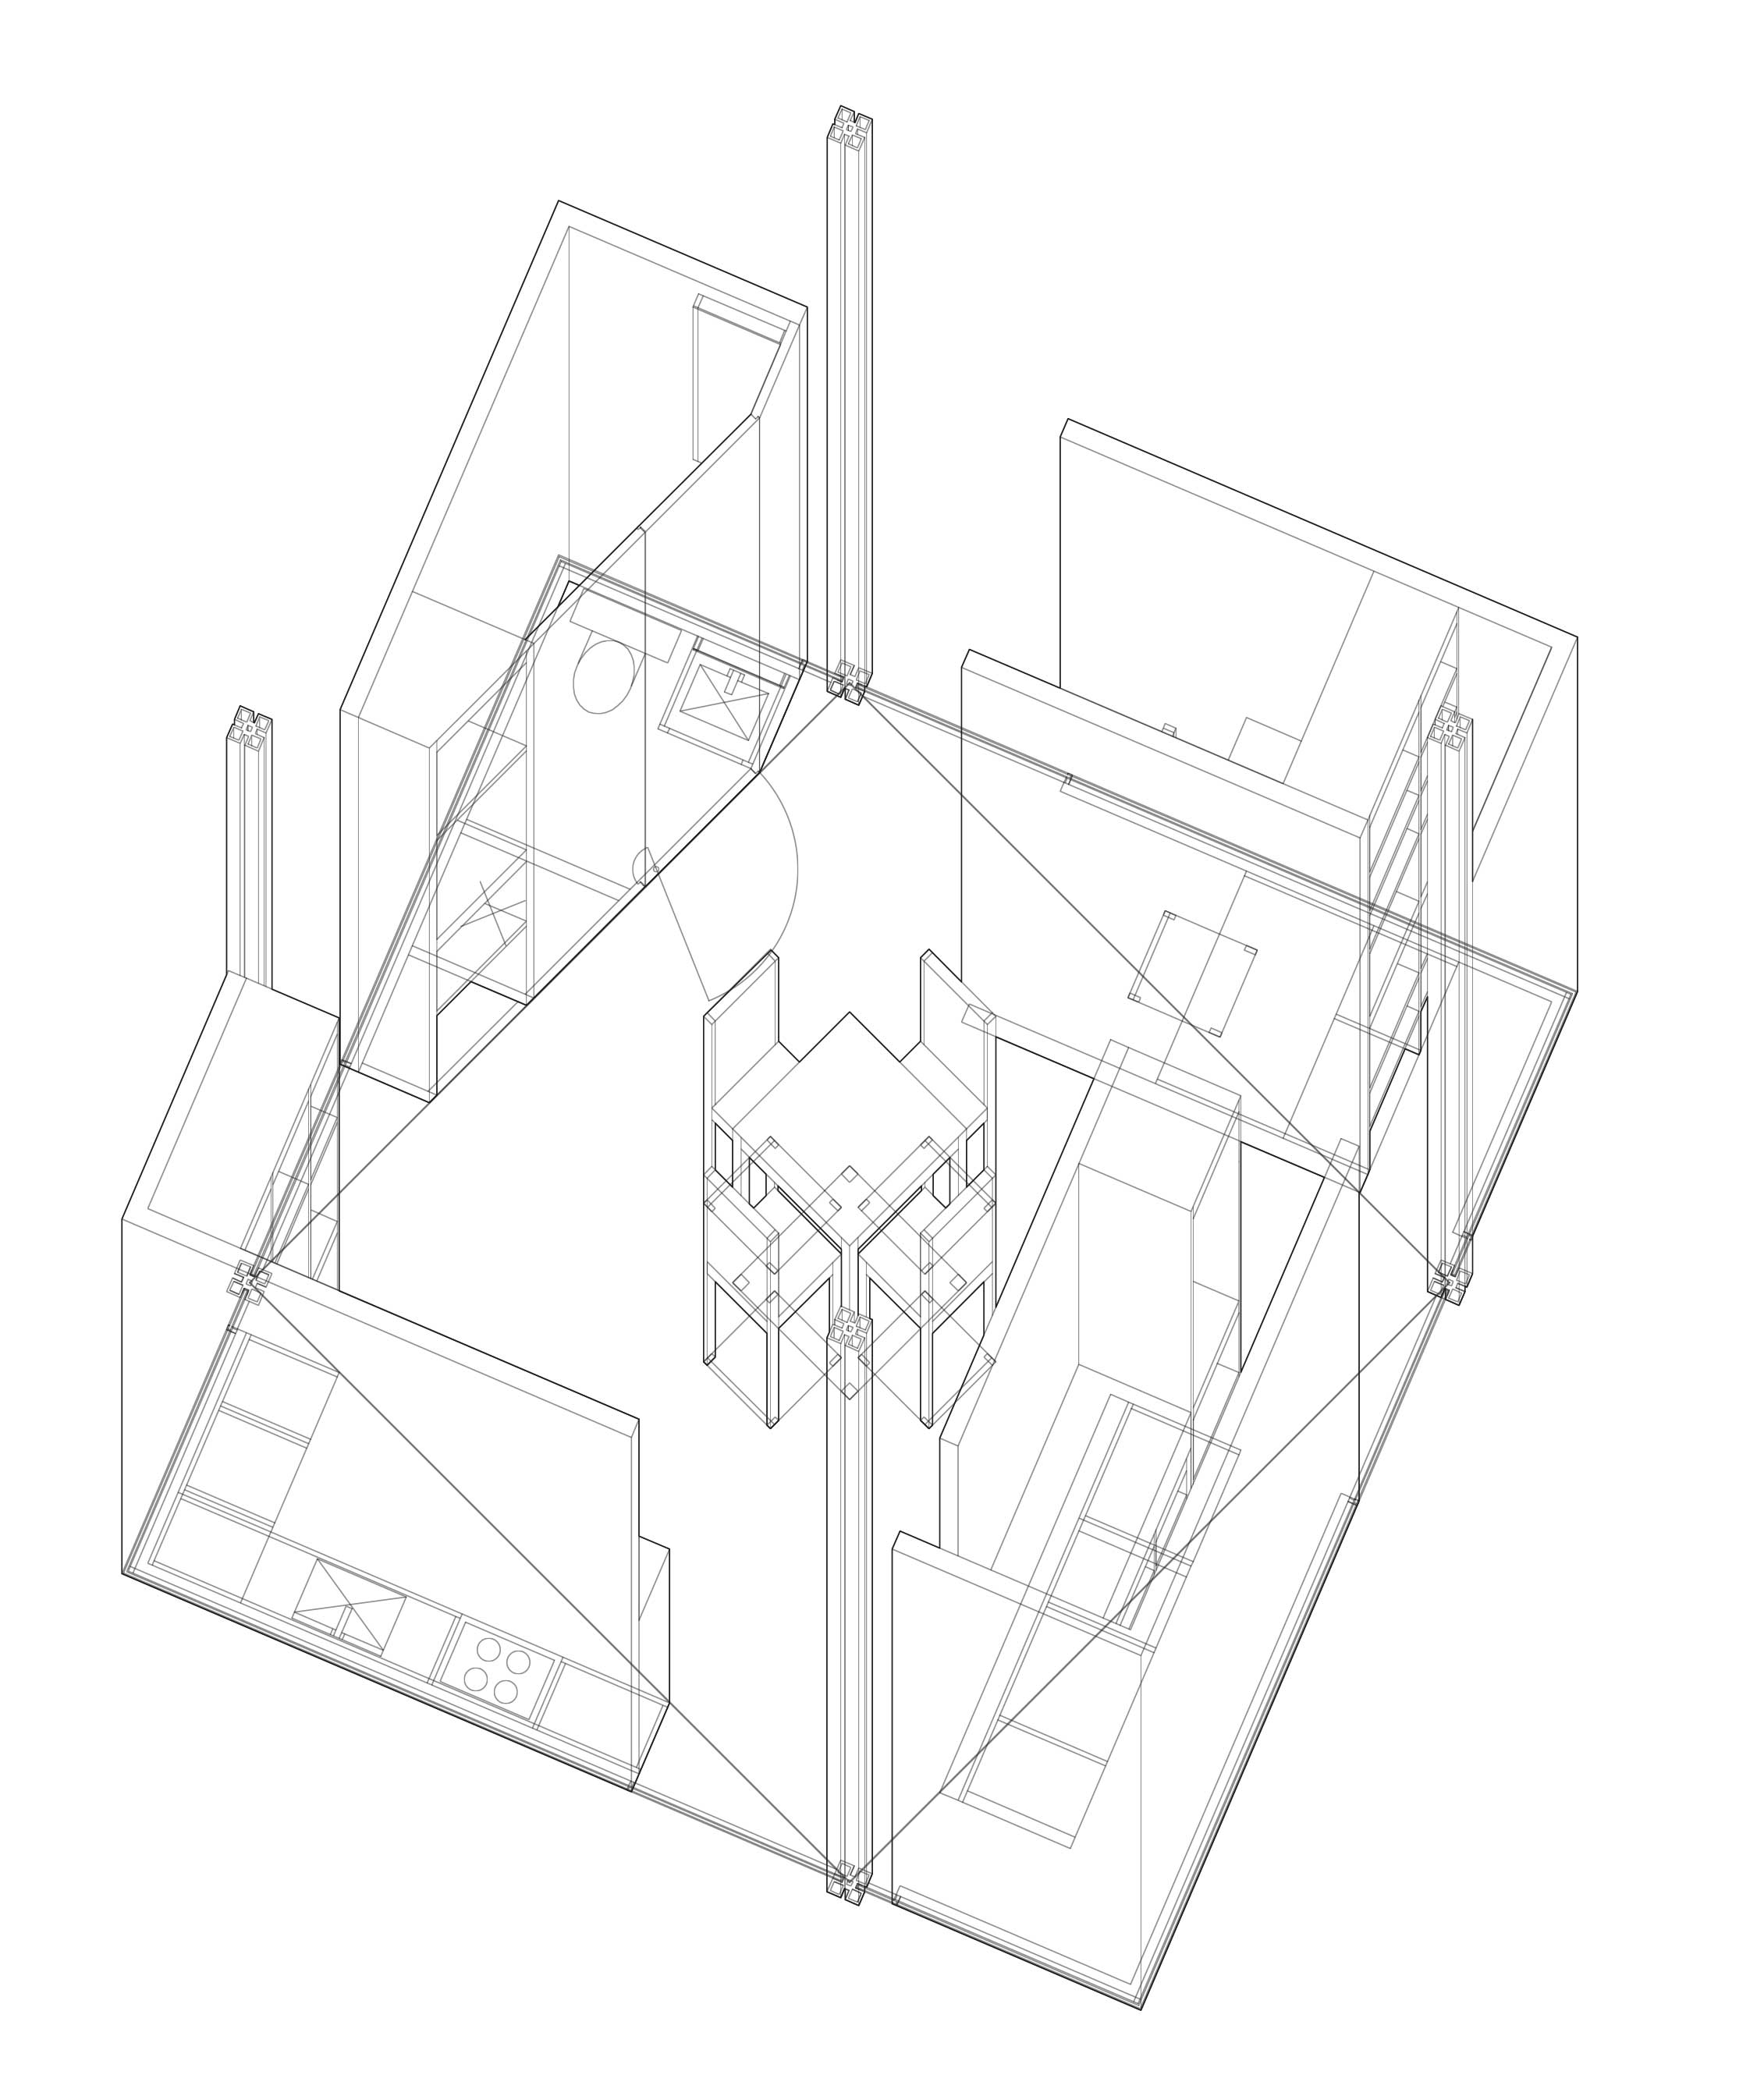 line architectural rendering by student in studio 3A